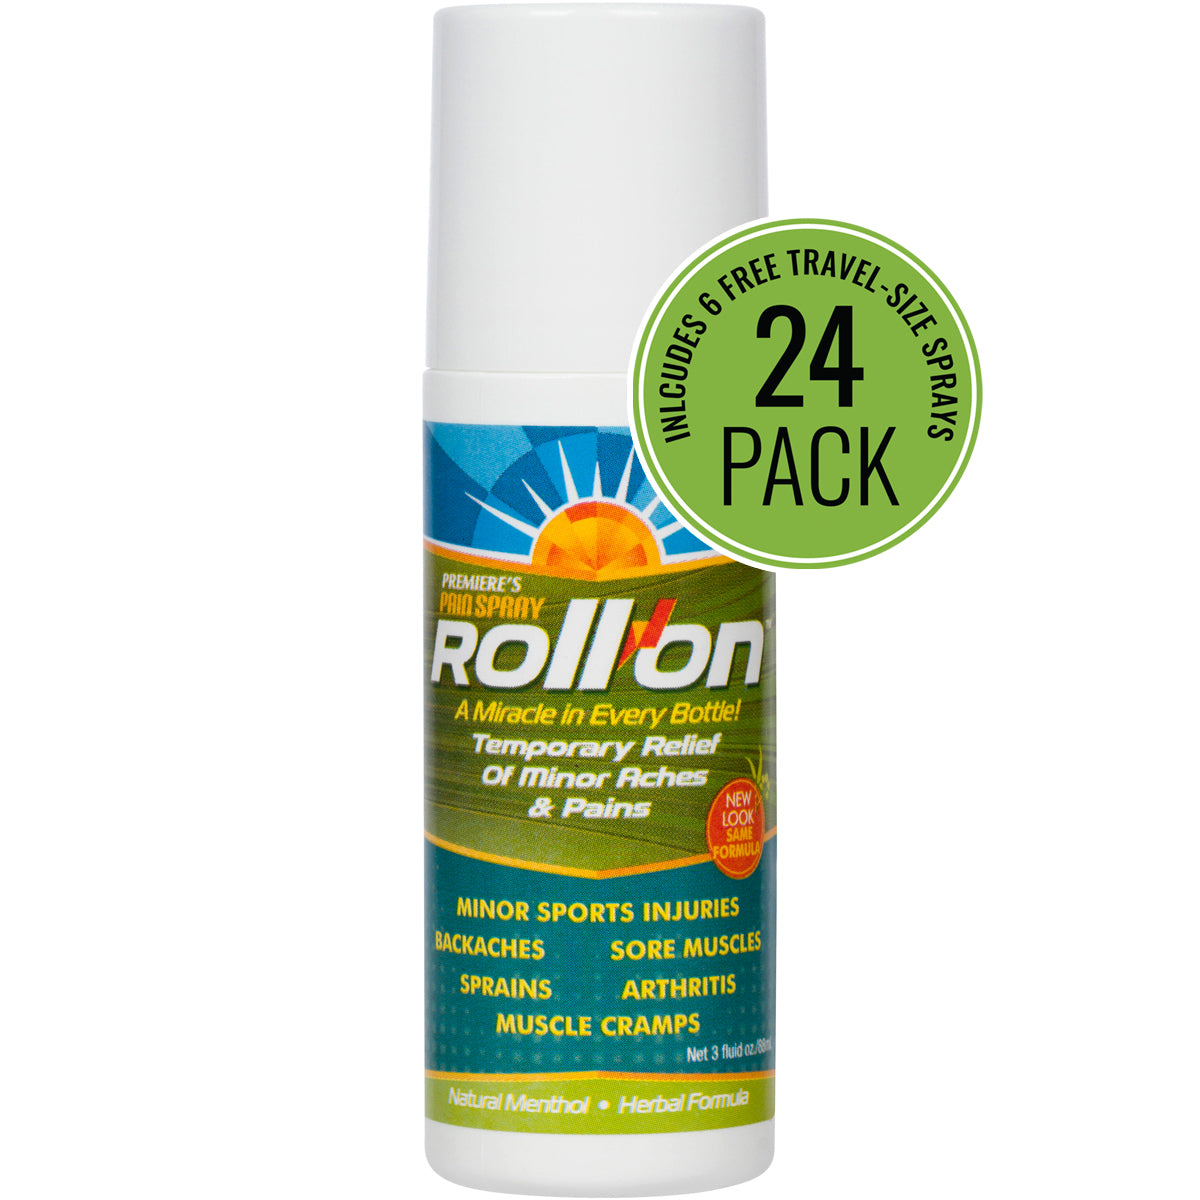 Premiere's Pain Spray Roll-On 24-Pack